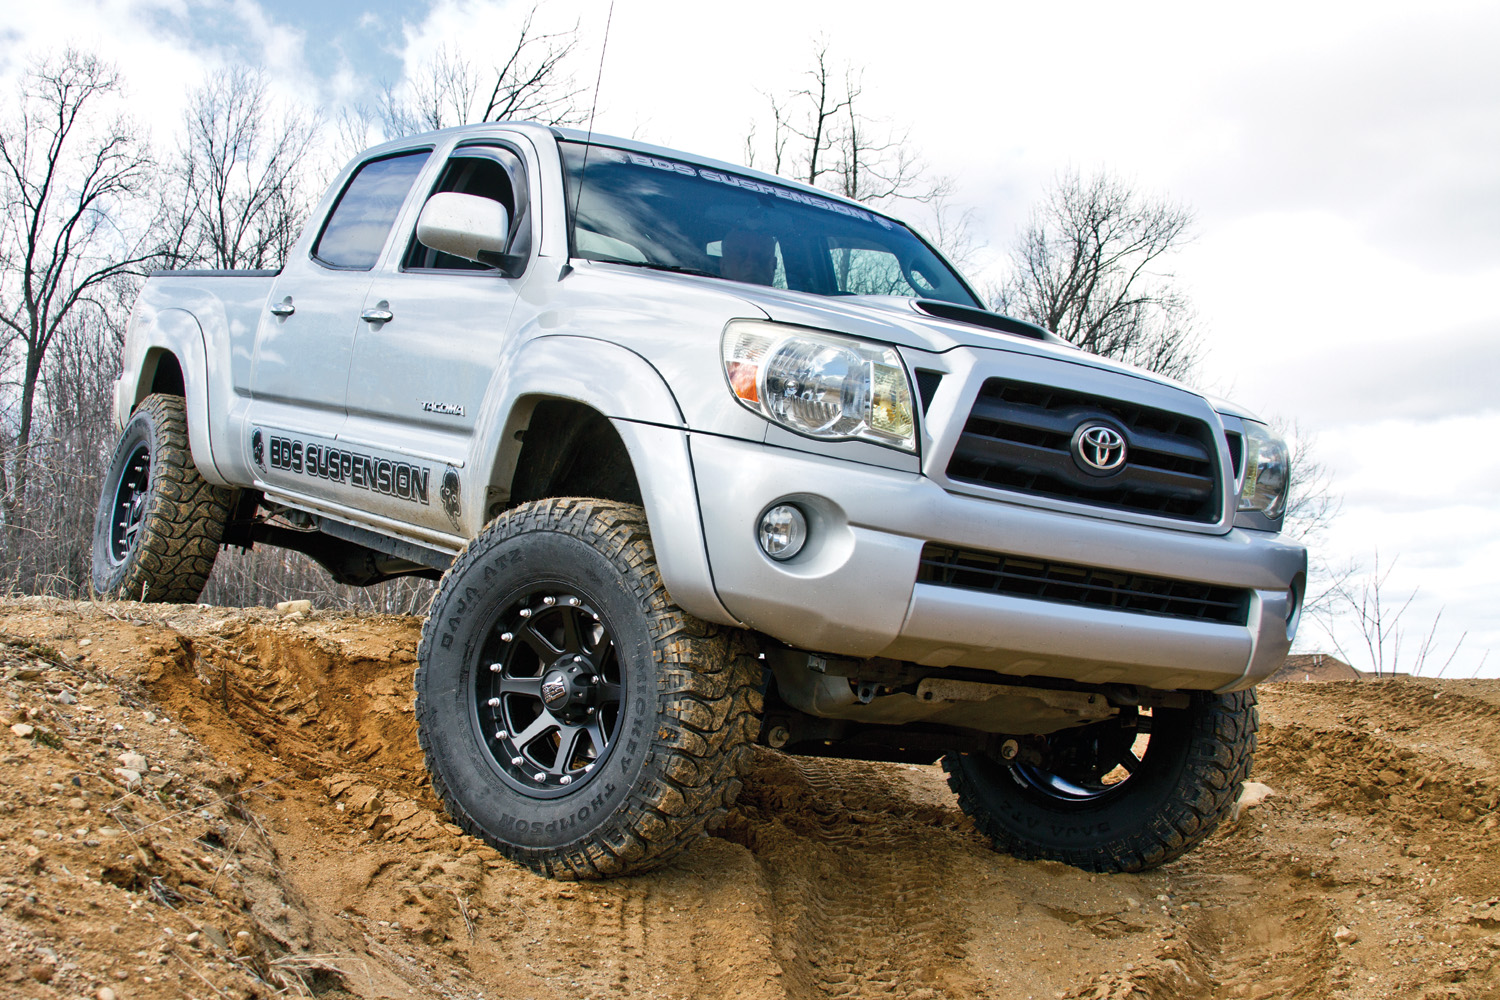 Lifted Toyota Tacoma For Sale  Lifted Toyota Tacoma For Sale  Lifted Toyota Tacoma For Sale